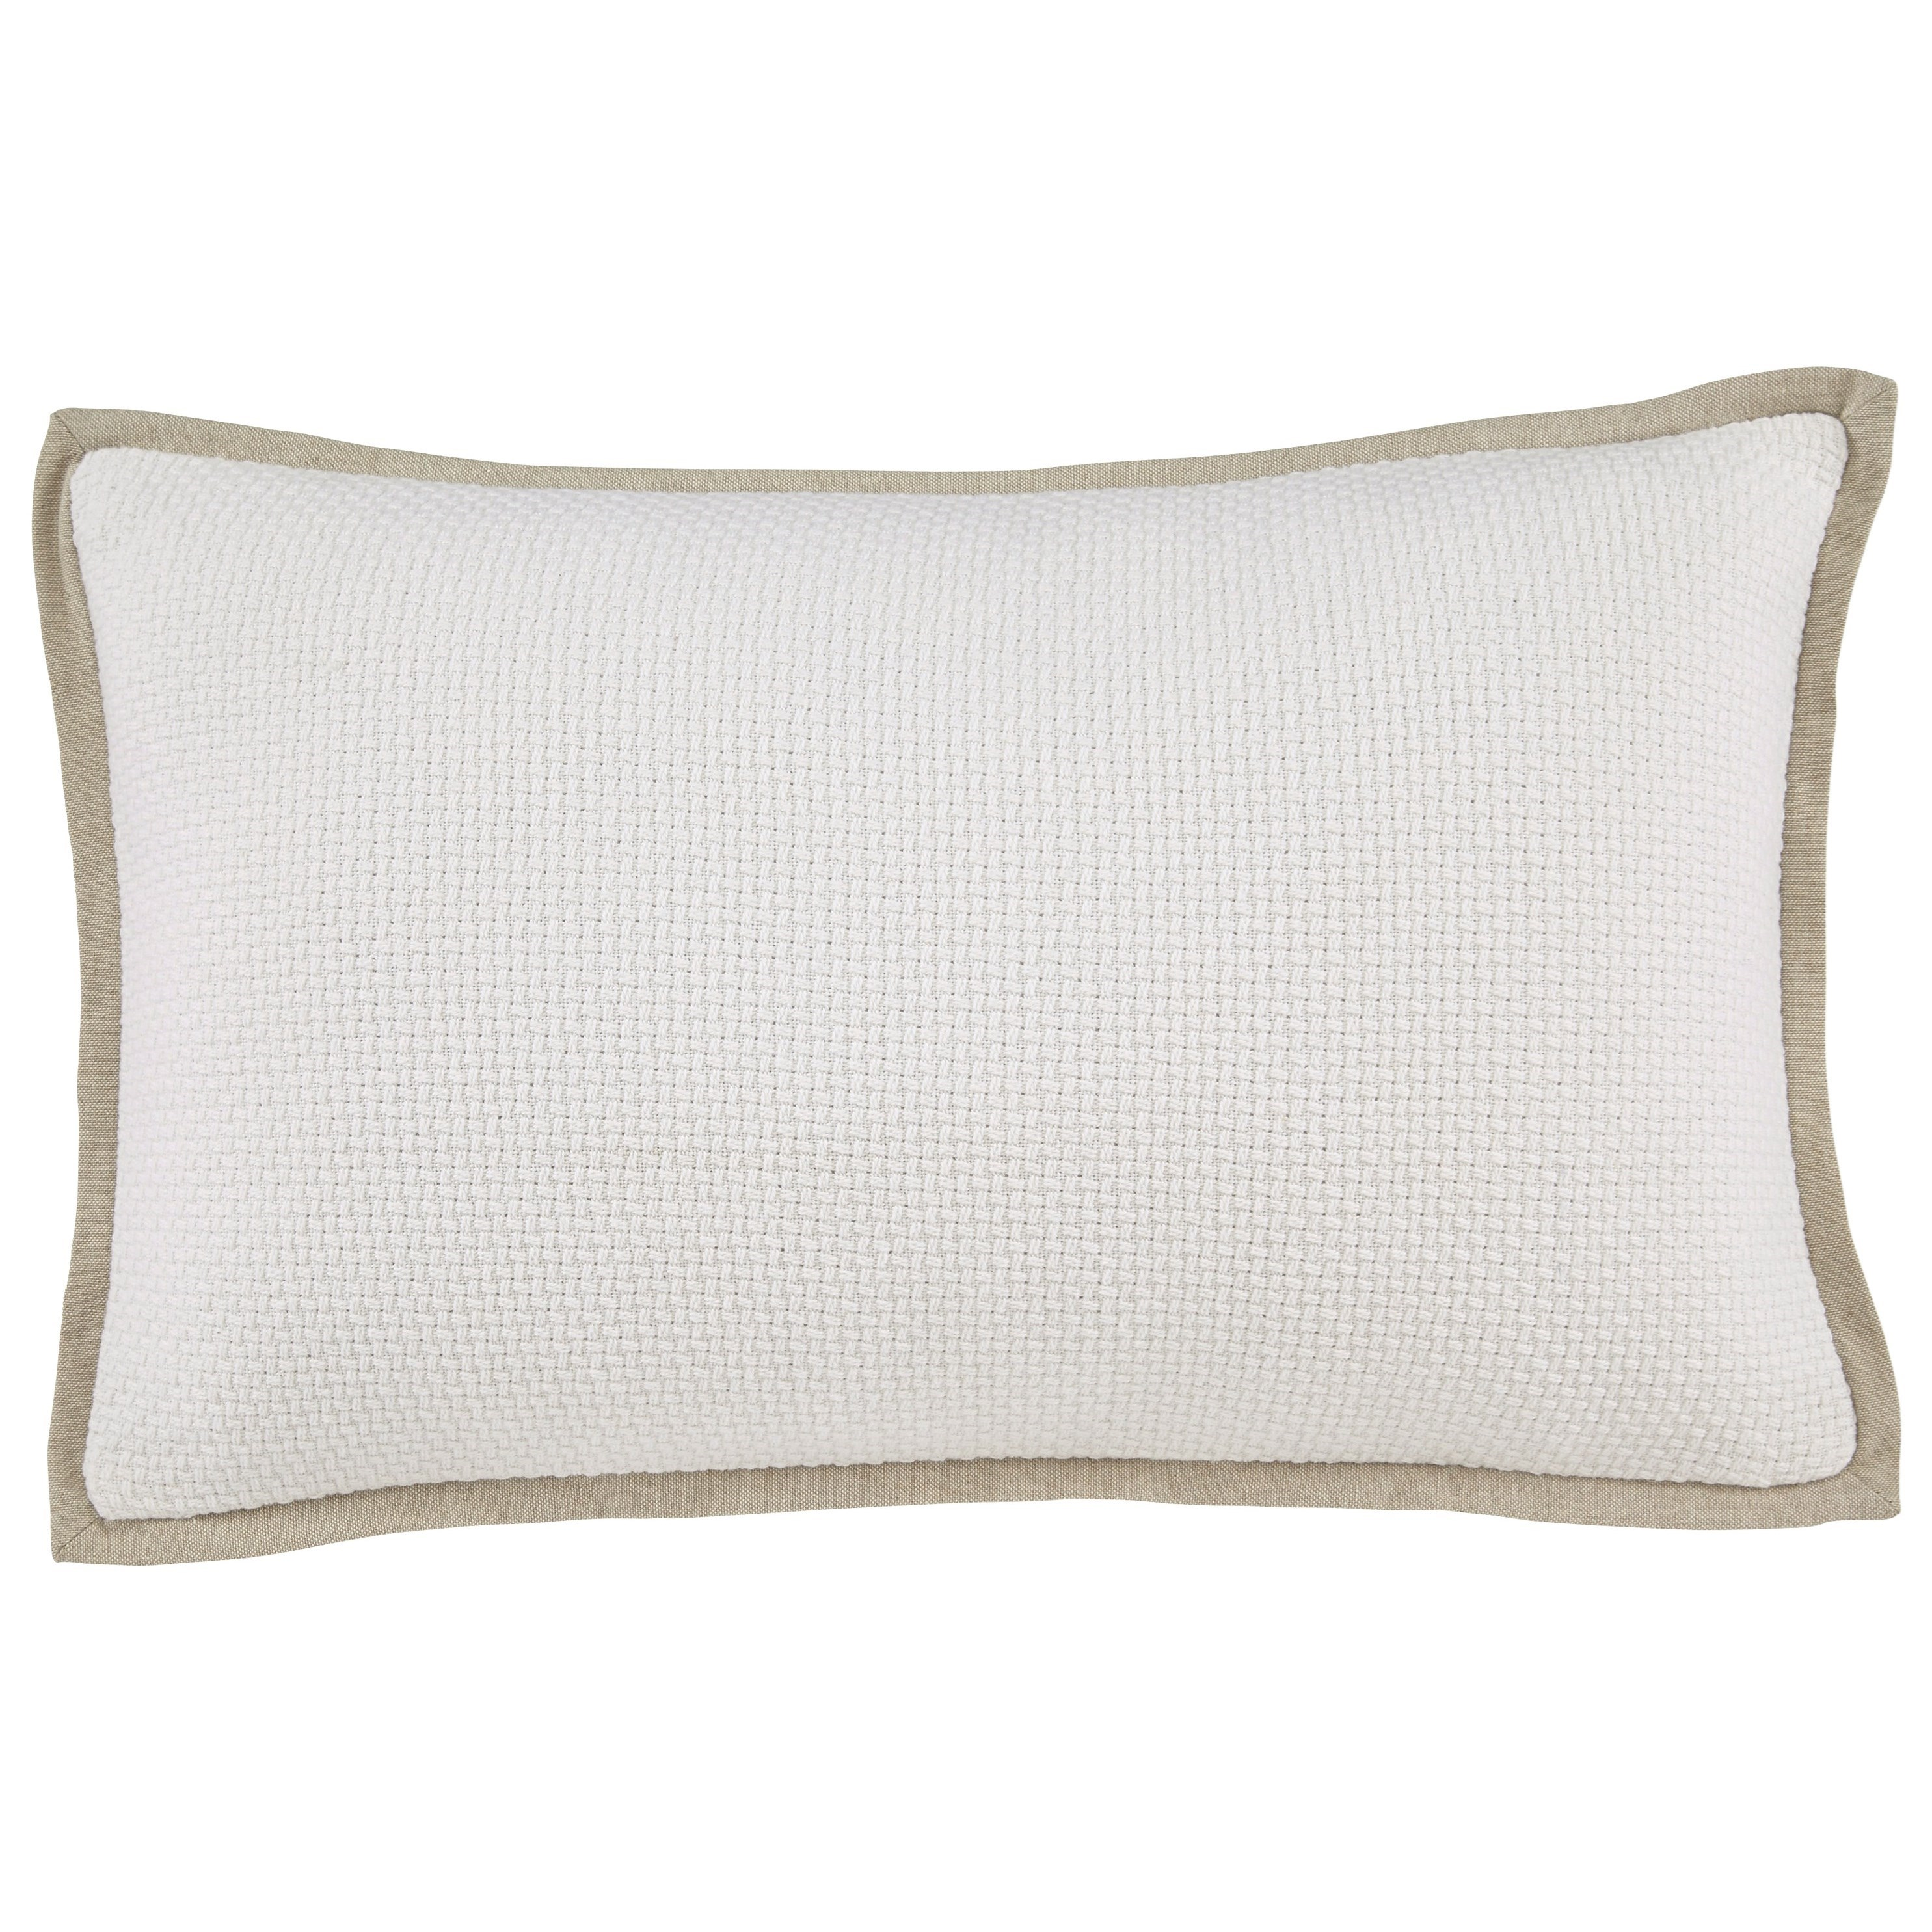 Signature Design by Ashley Pillows Leonie - White Pillow - Item Number: A1000646P